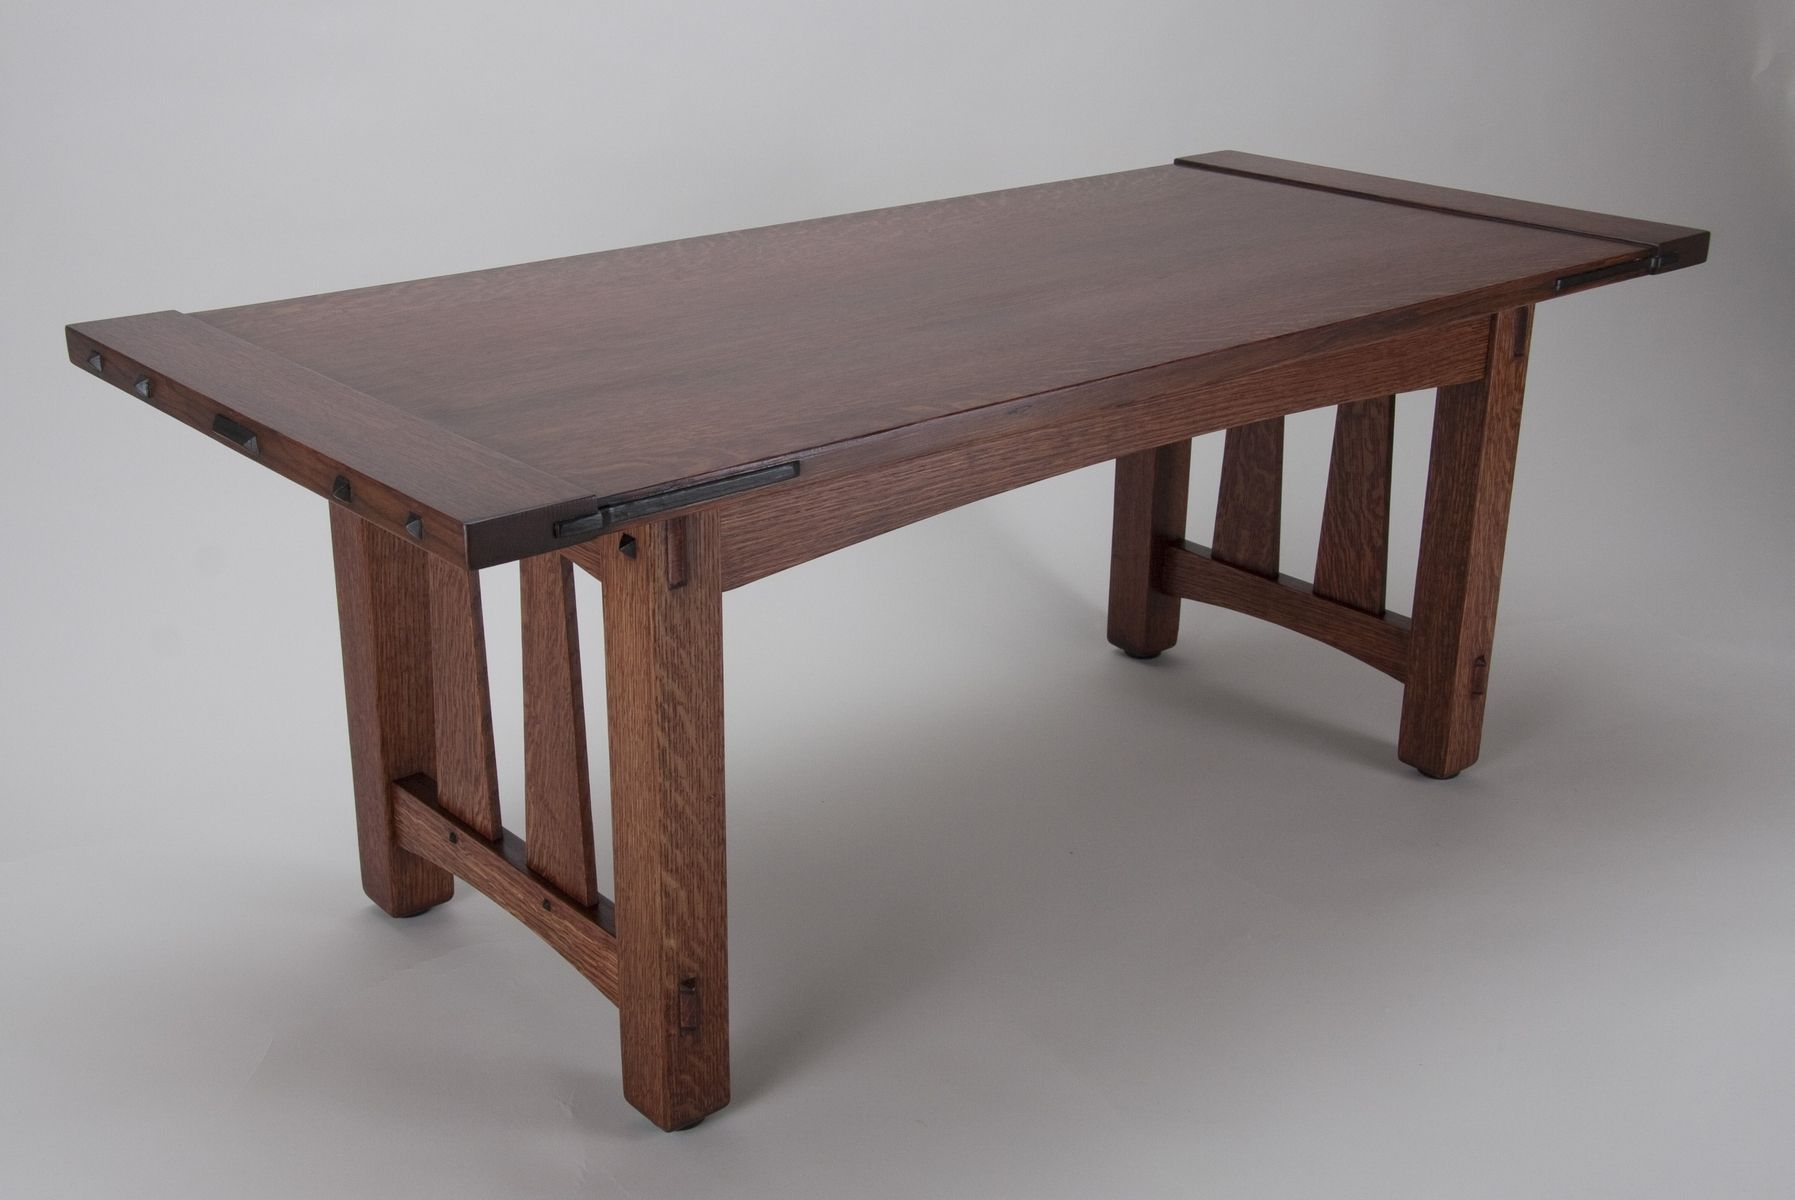 Custom craftsman style coffee table by jro furnituremaker for Mission style dining table